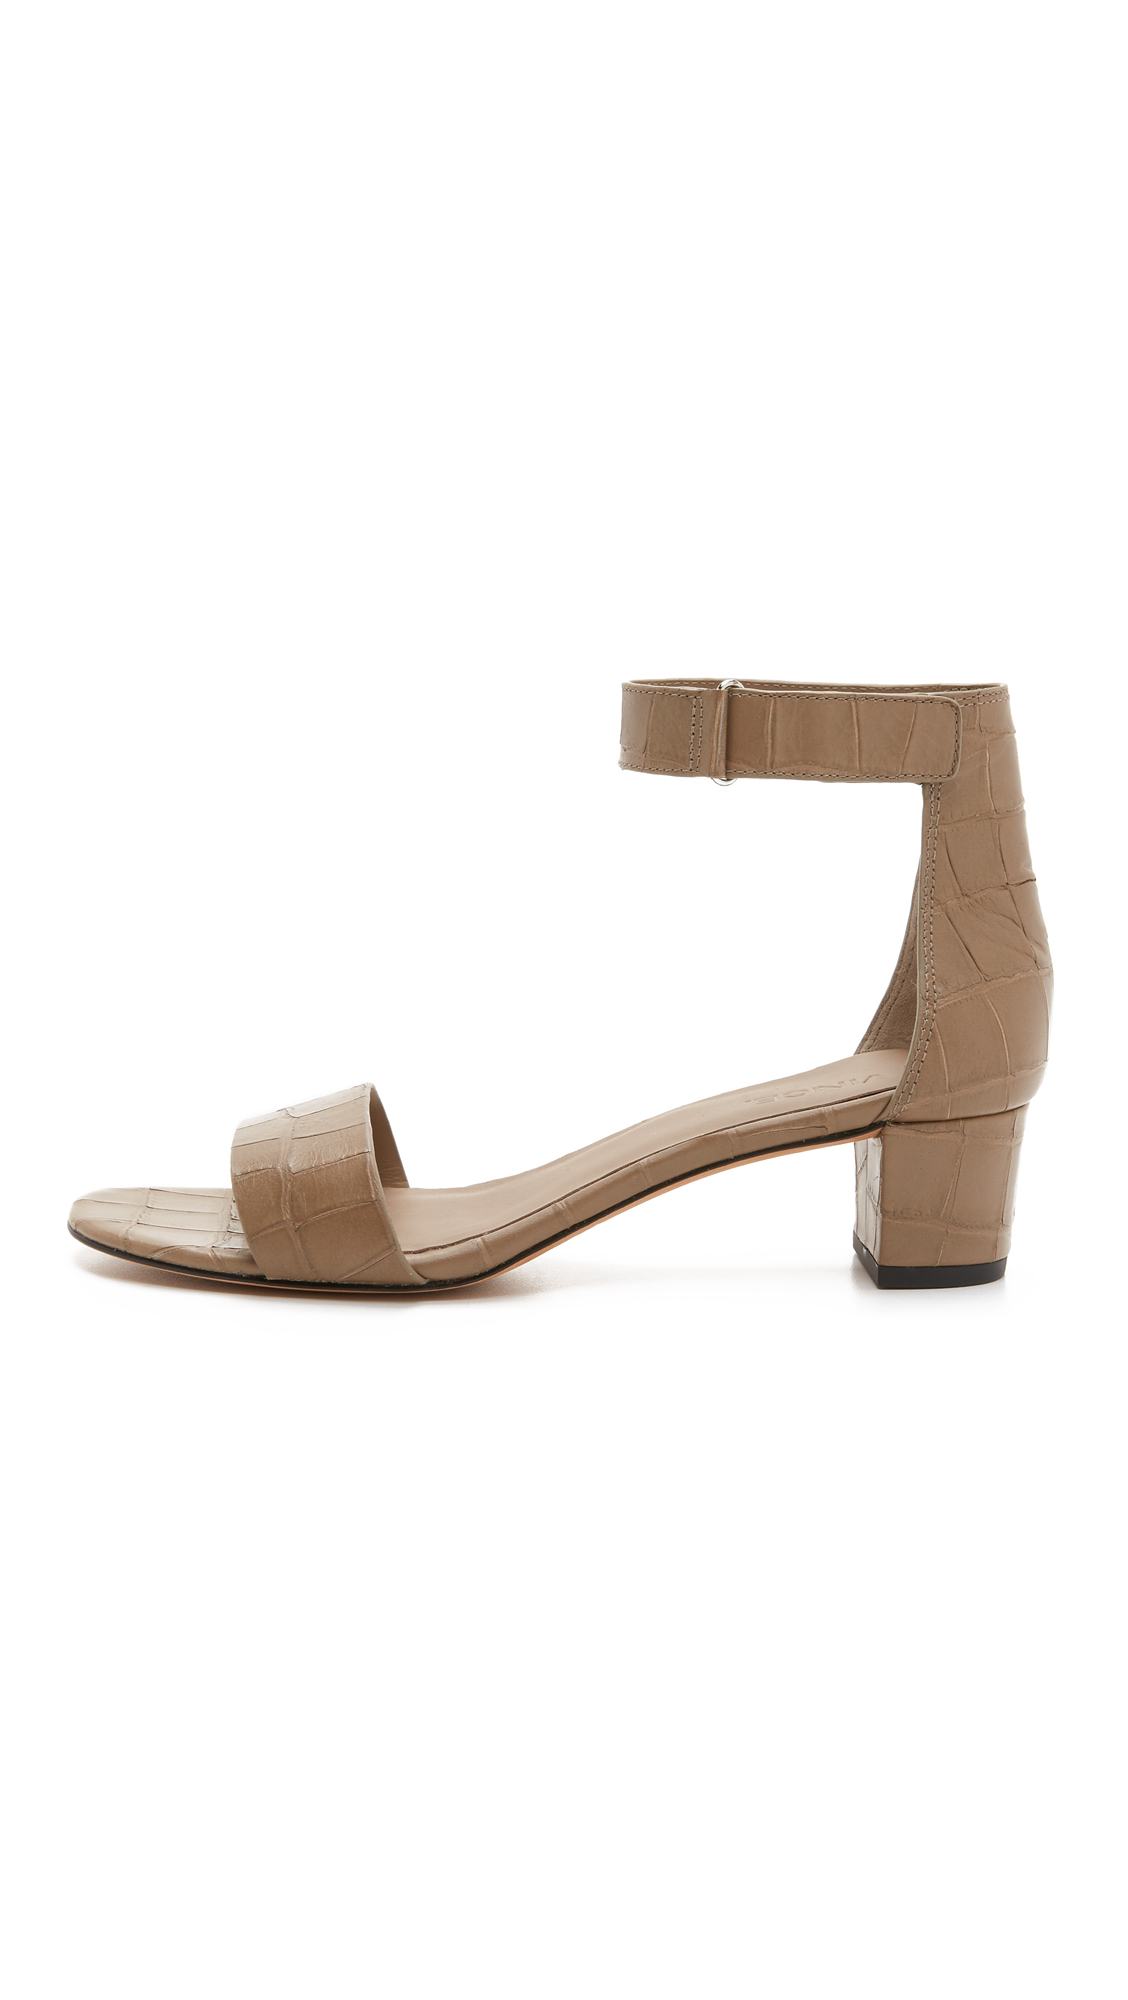 97bc3833f05 Lyst - Vince Rita City Sandals in Brown